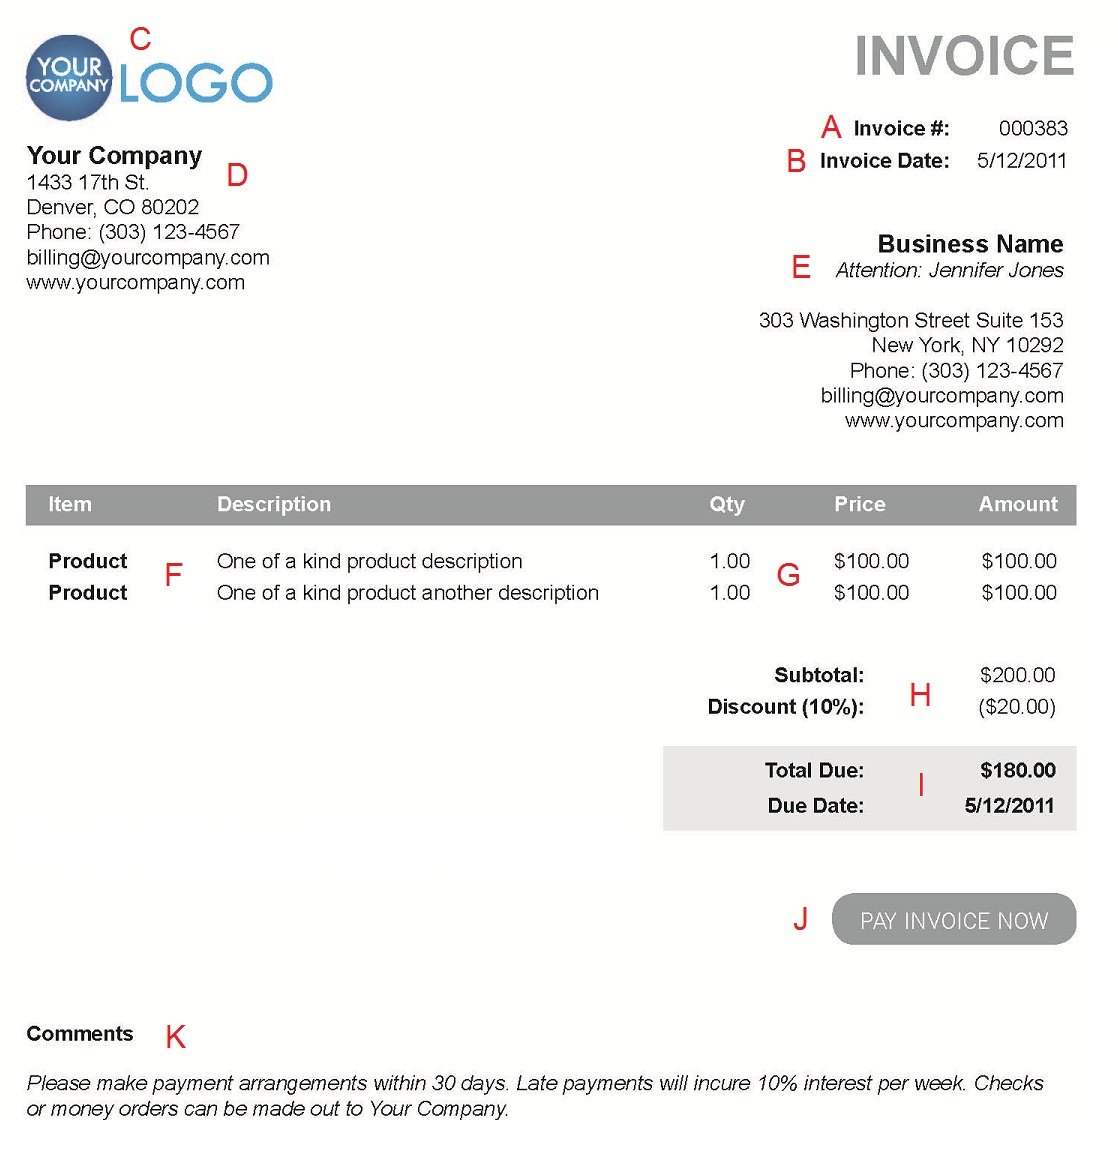 Coolmathgamesus  Remarkable The  Different Sections Of An Electronic Payment Invoice With Lovable A  With Alluring Billing Invoicing Also Word Invoice Templates Free Download In Addition  Chevy Silverado Invoice Price And Car Invoice Price List As Well As Free Tax Invoice Template Word Additionally Edi Invoice Processing From Paysimplecom With Coolmathgamesus  Lovable The  Different Sections Of An Electronic Payment Invoice With Alluring A  And Remarkable Billing Invoicing Also Word Invoice Templates Free Download In Addition  Chevy Silverado Invoice Price From Paysimplecom